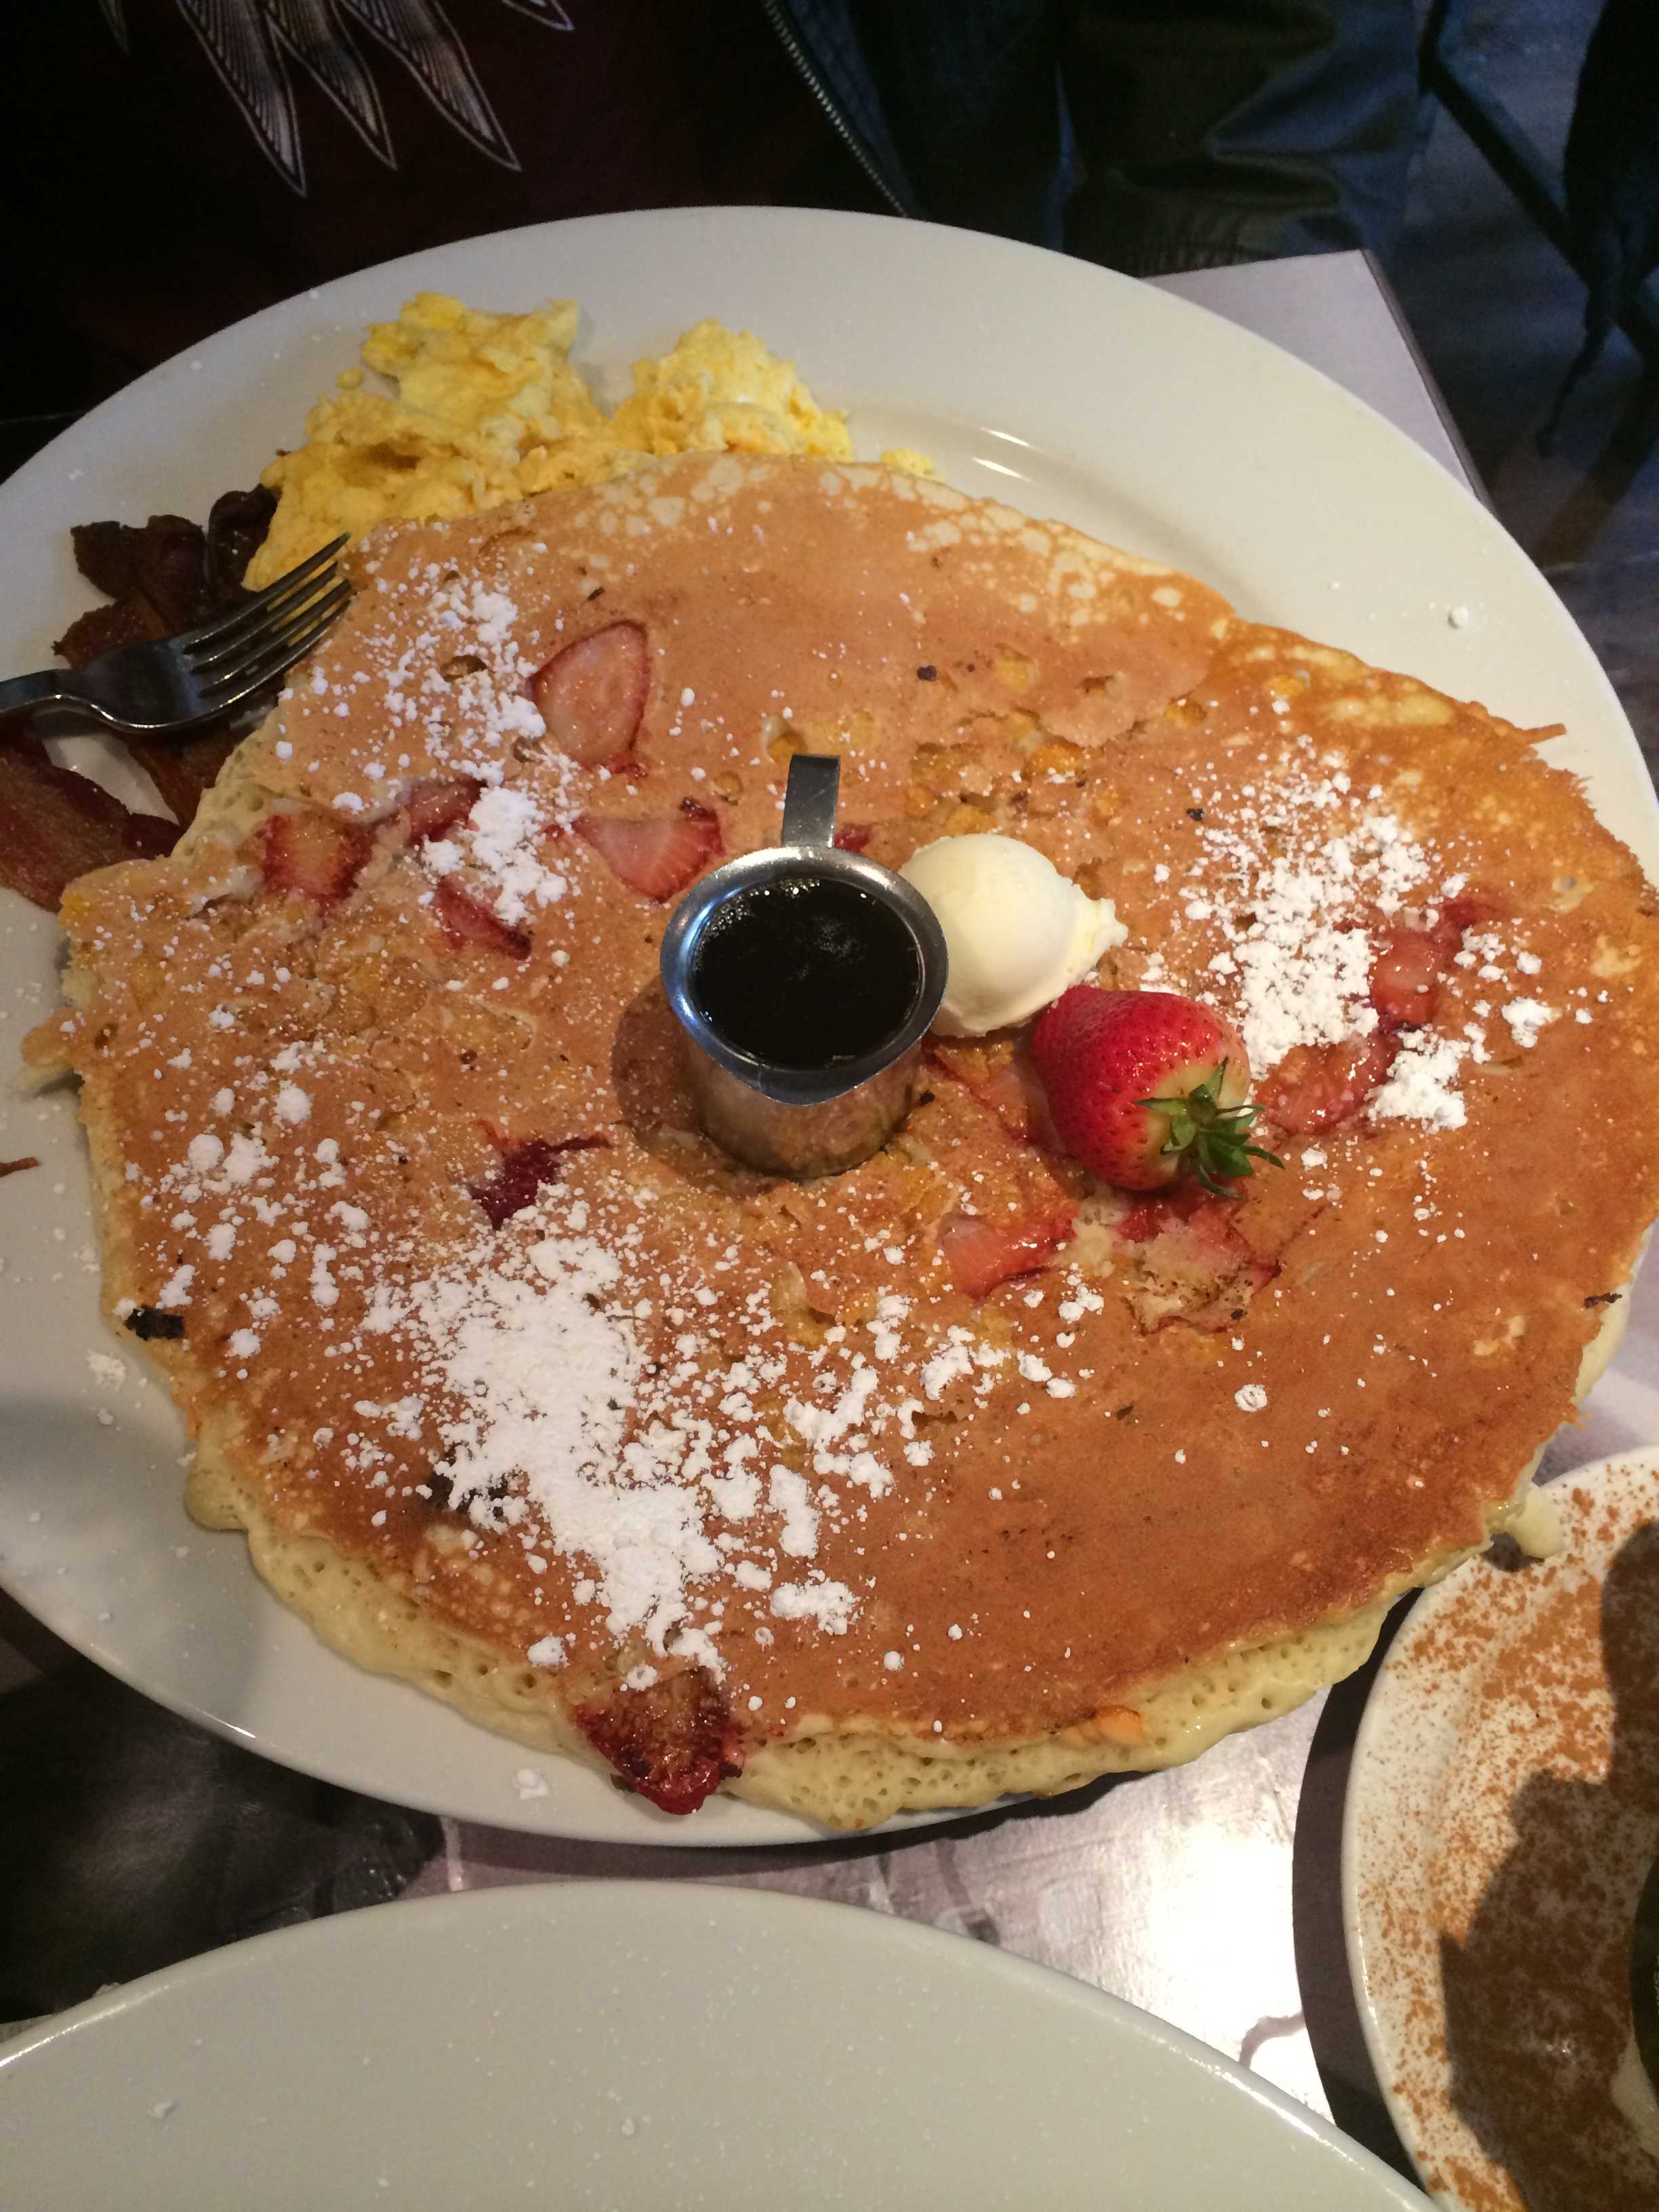 Delicious strawberry frosted flakes pancakes served up in huge portions at the Hash House A Go Go.Photo credit: Michelle Moran